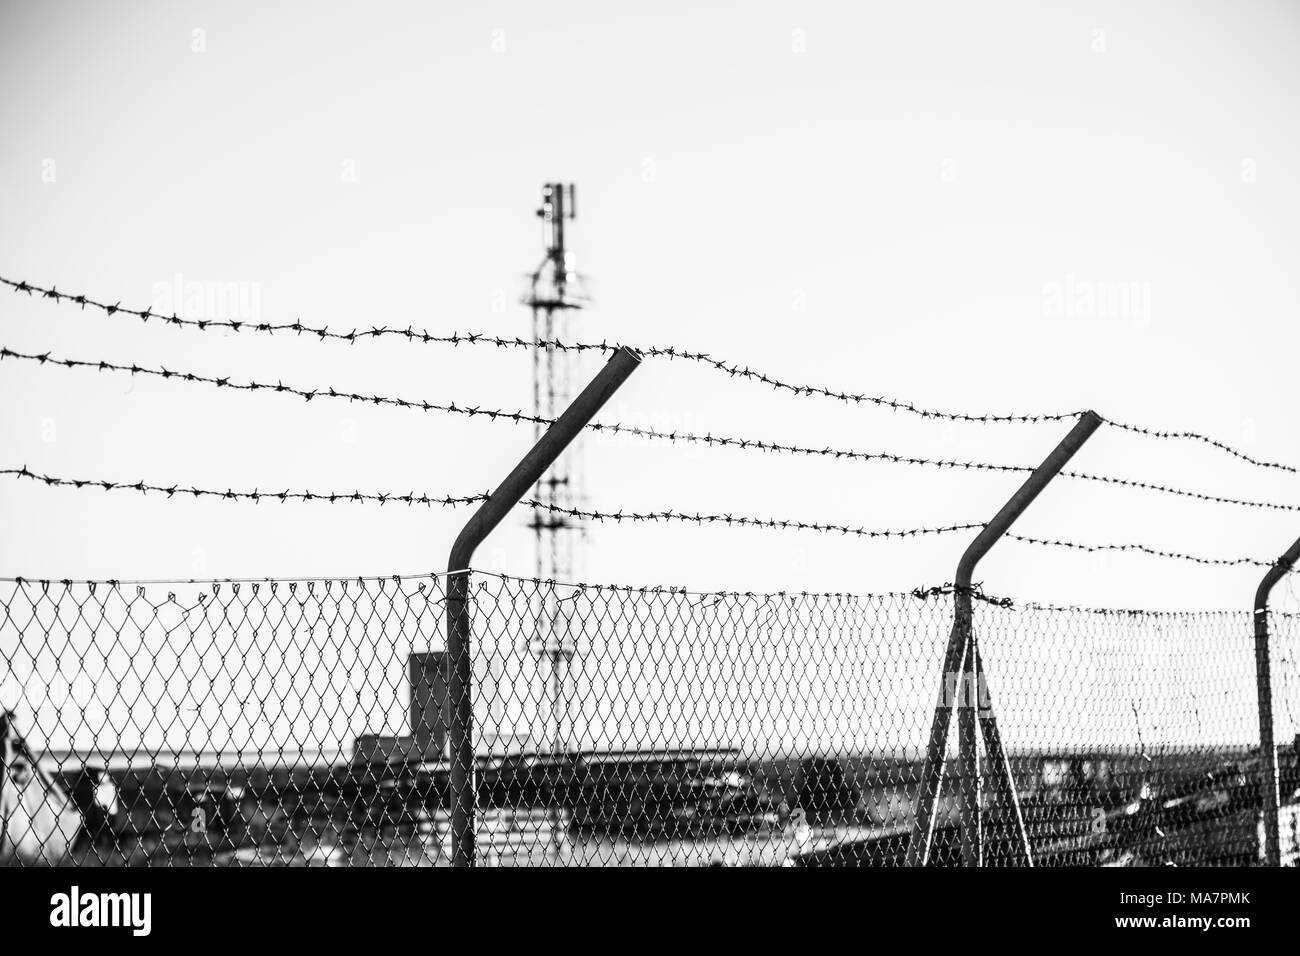 barbed wire fence security - Stock Image